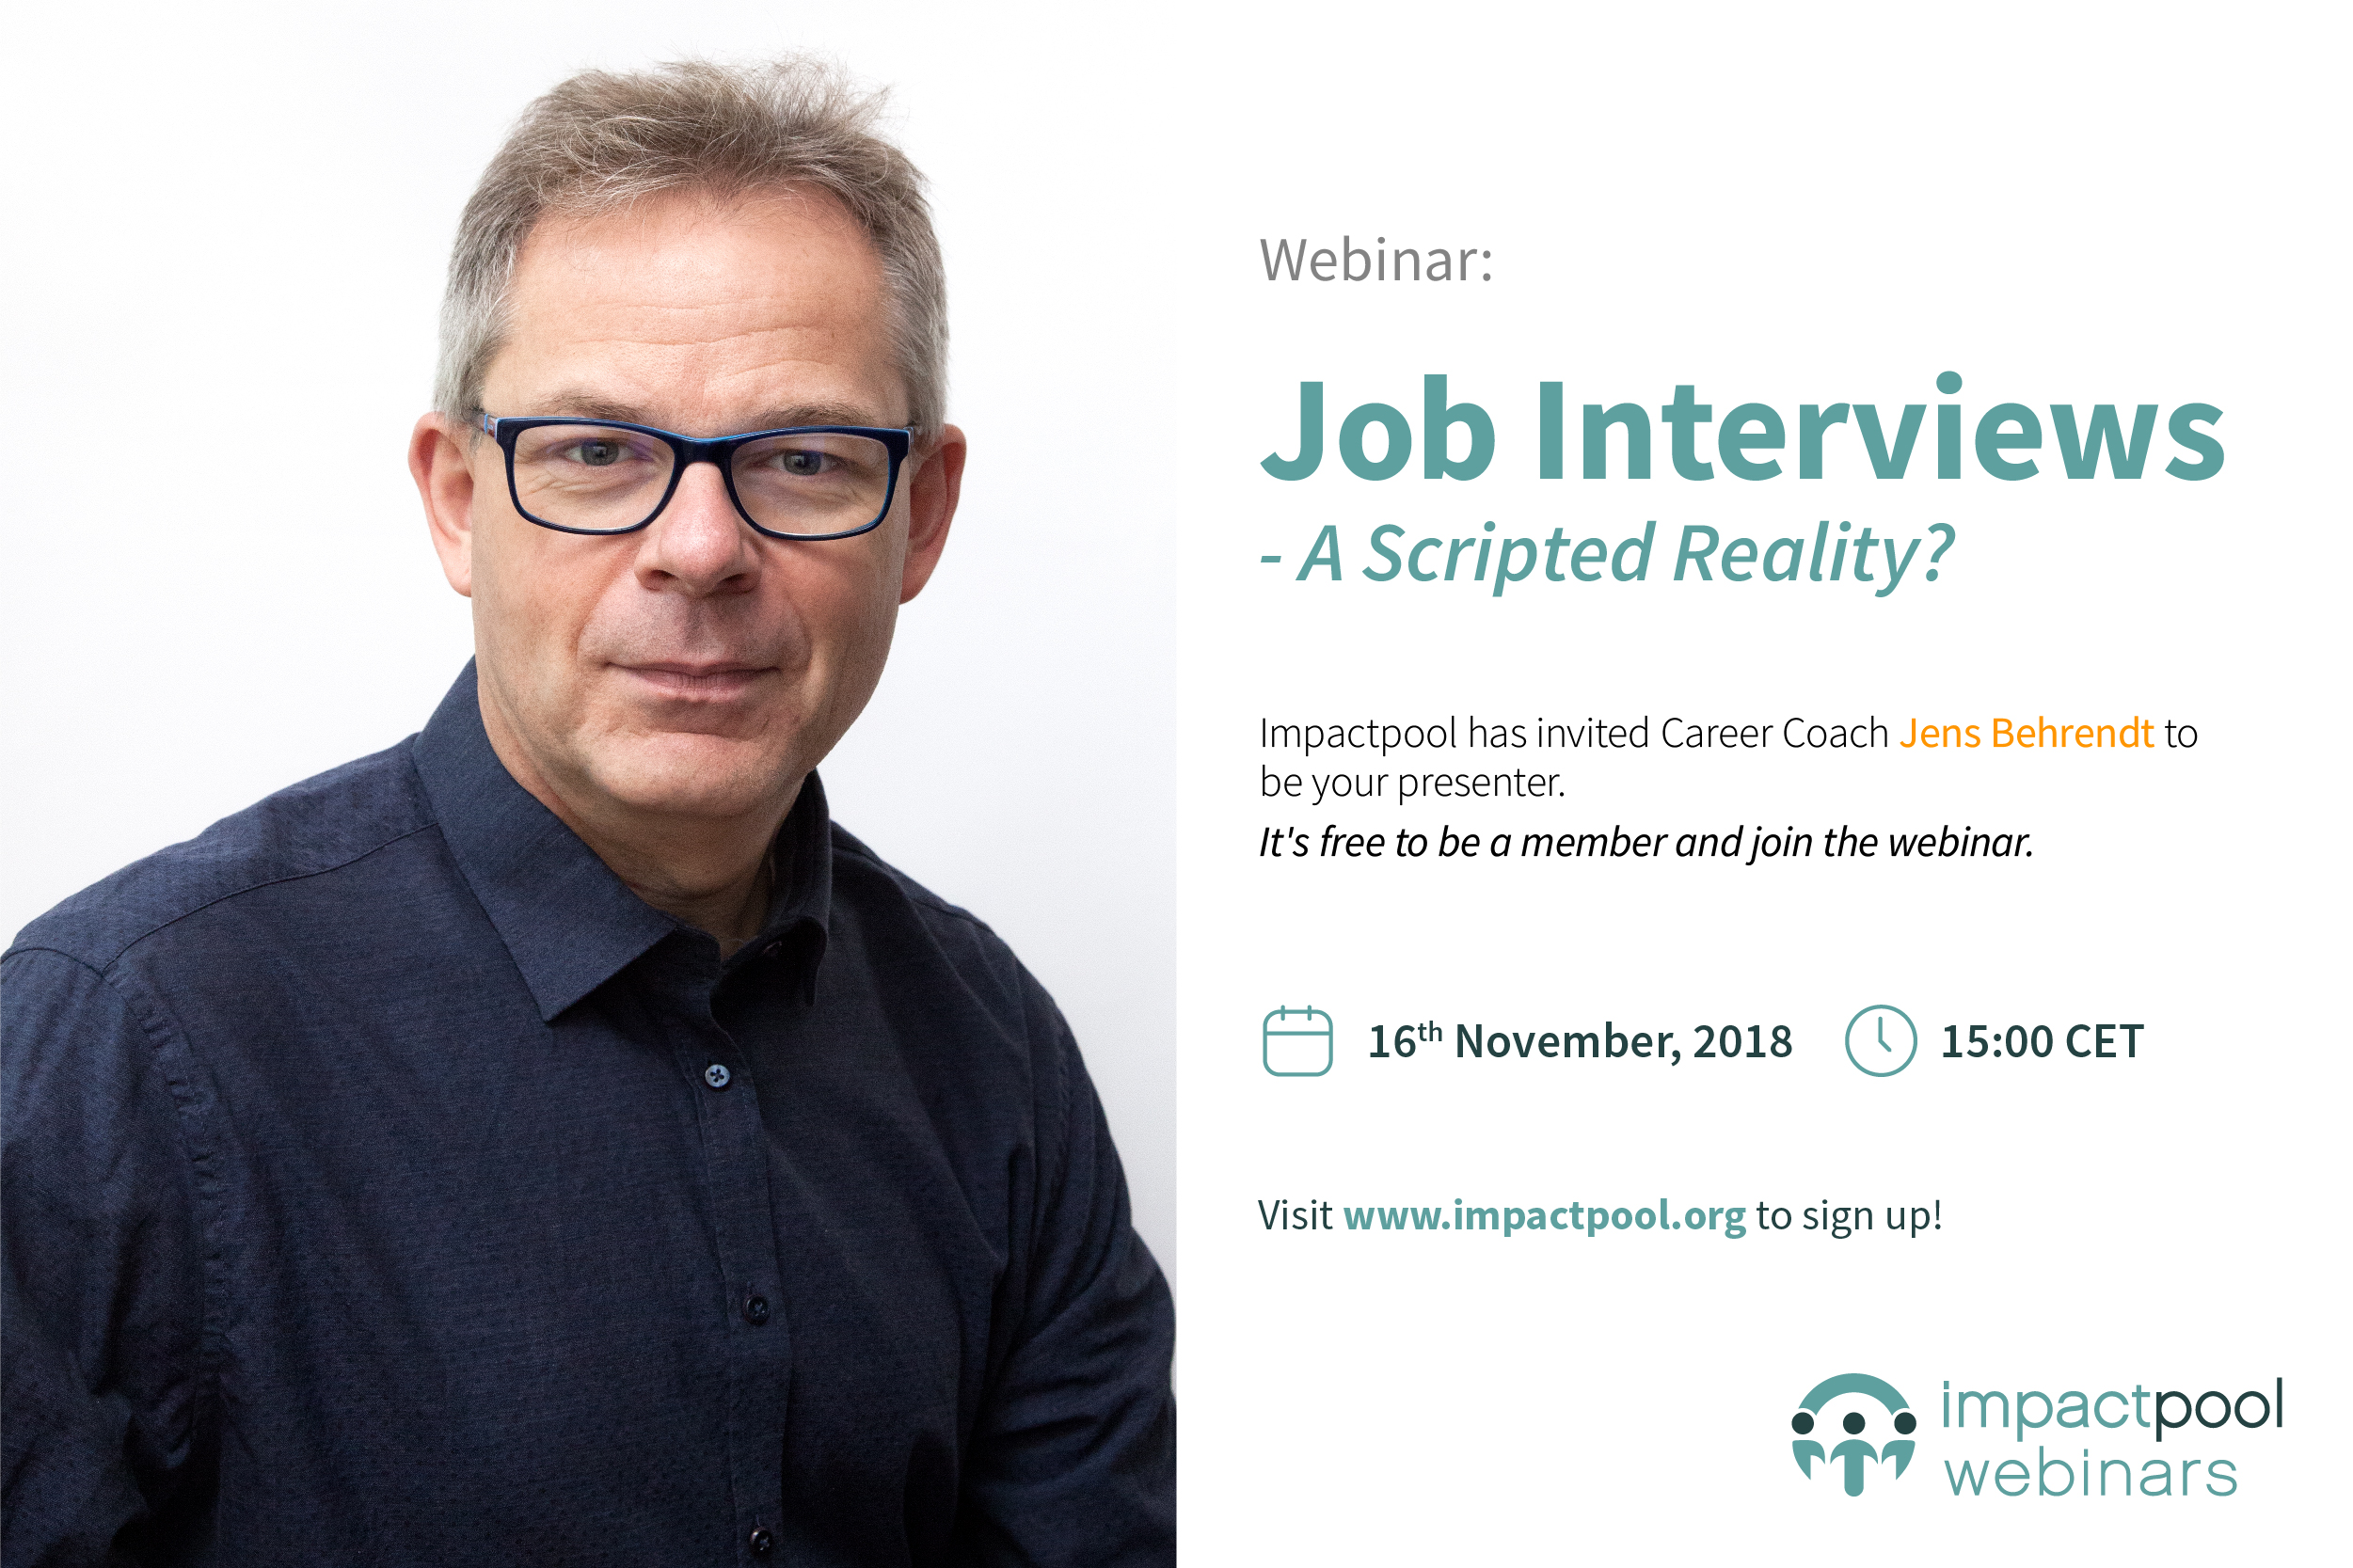 Webinar job interviews a scripted reality 2f8ea40b ed55 4431 8172 d116cd97f9ba